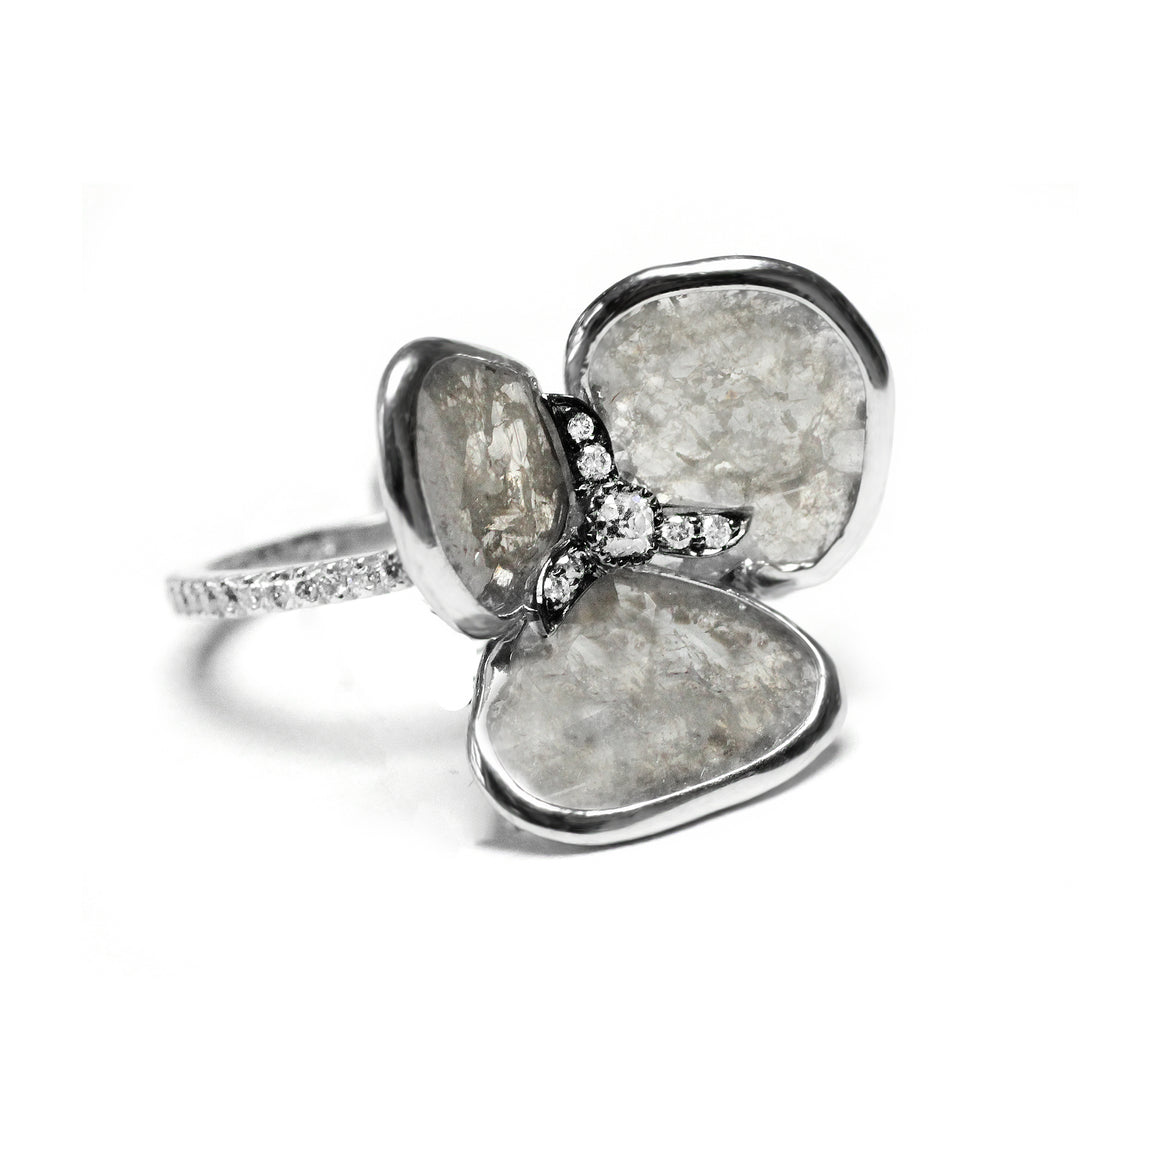 Grey Diamond Slice Flower Ring by Vivaan - White Gold - Talisman Collection Fine Jewelers